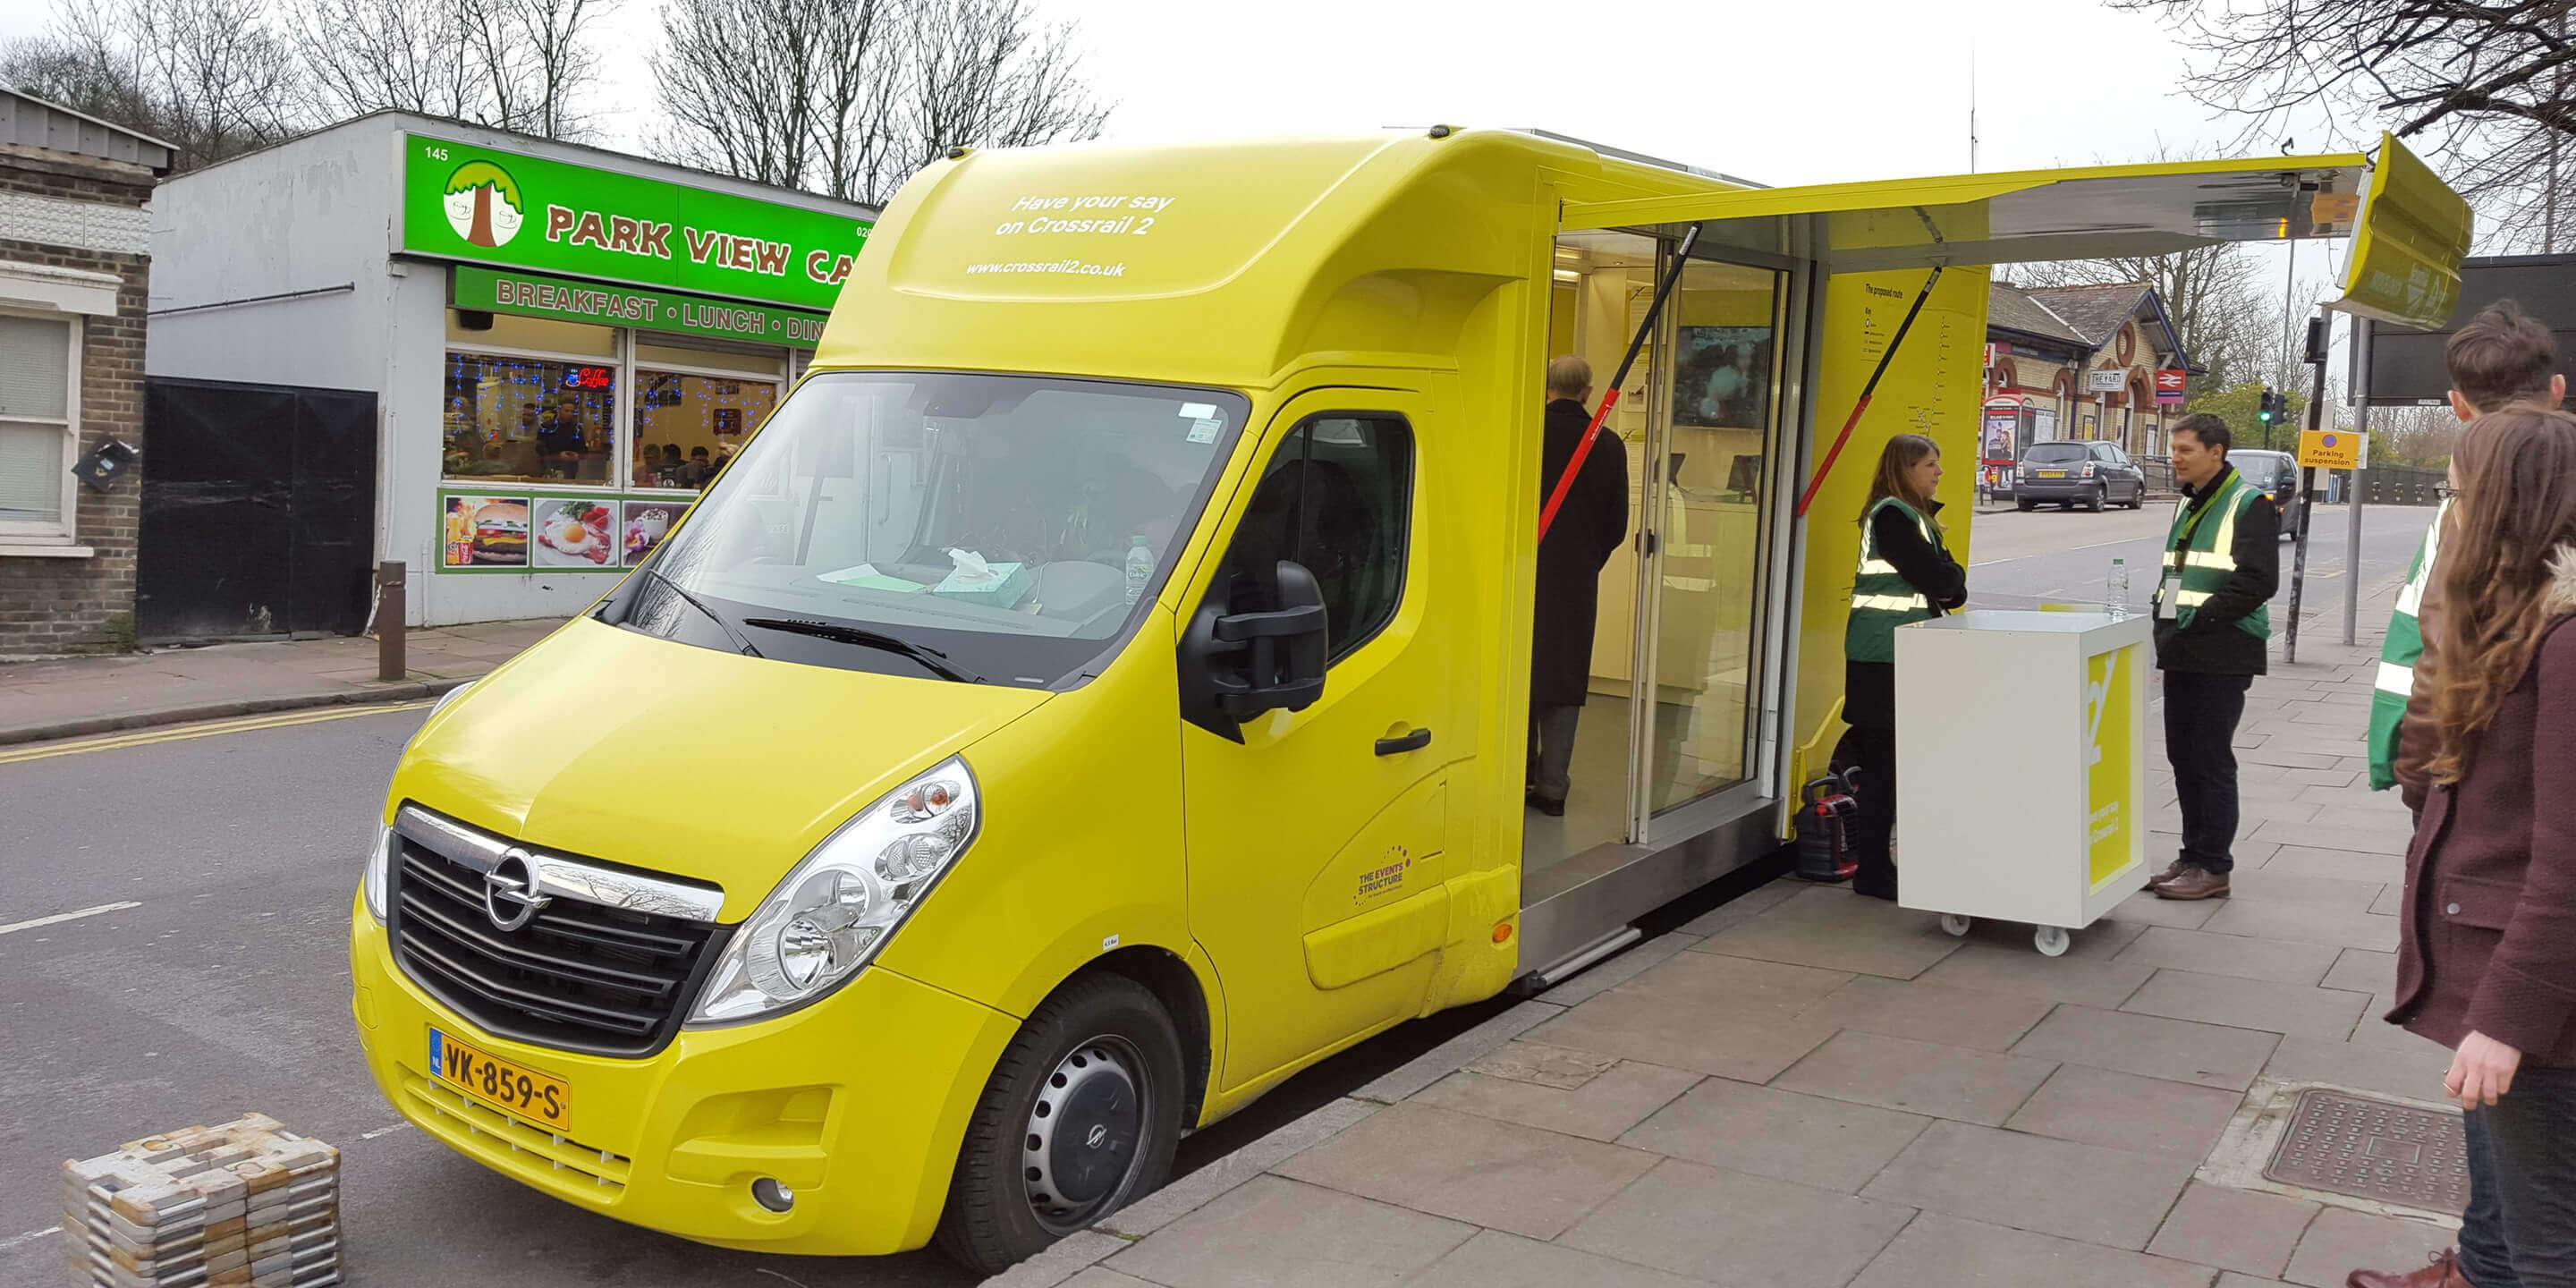 Self-Drive Exhibition Units: Ranger Promotional Vehicle for London Crossrail Promotion